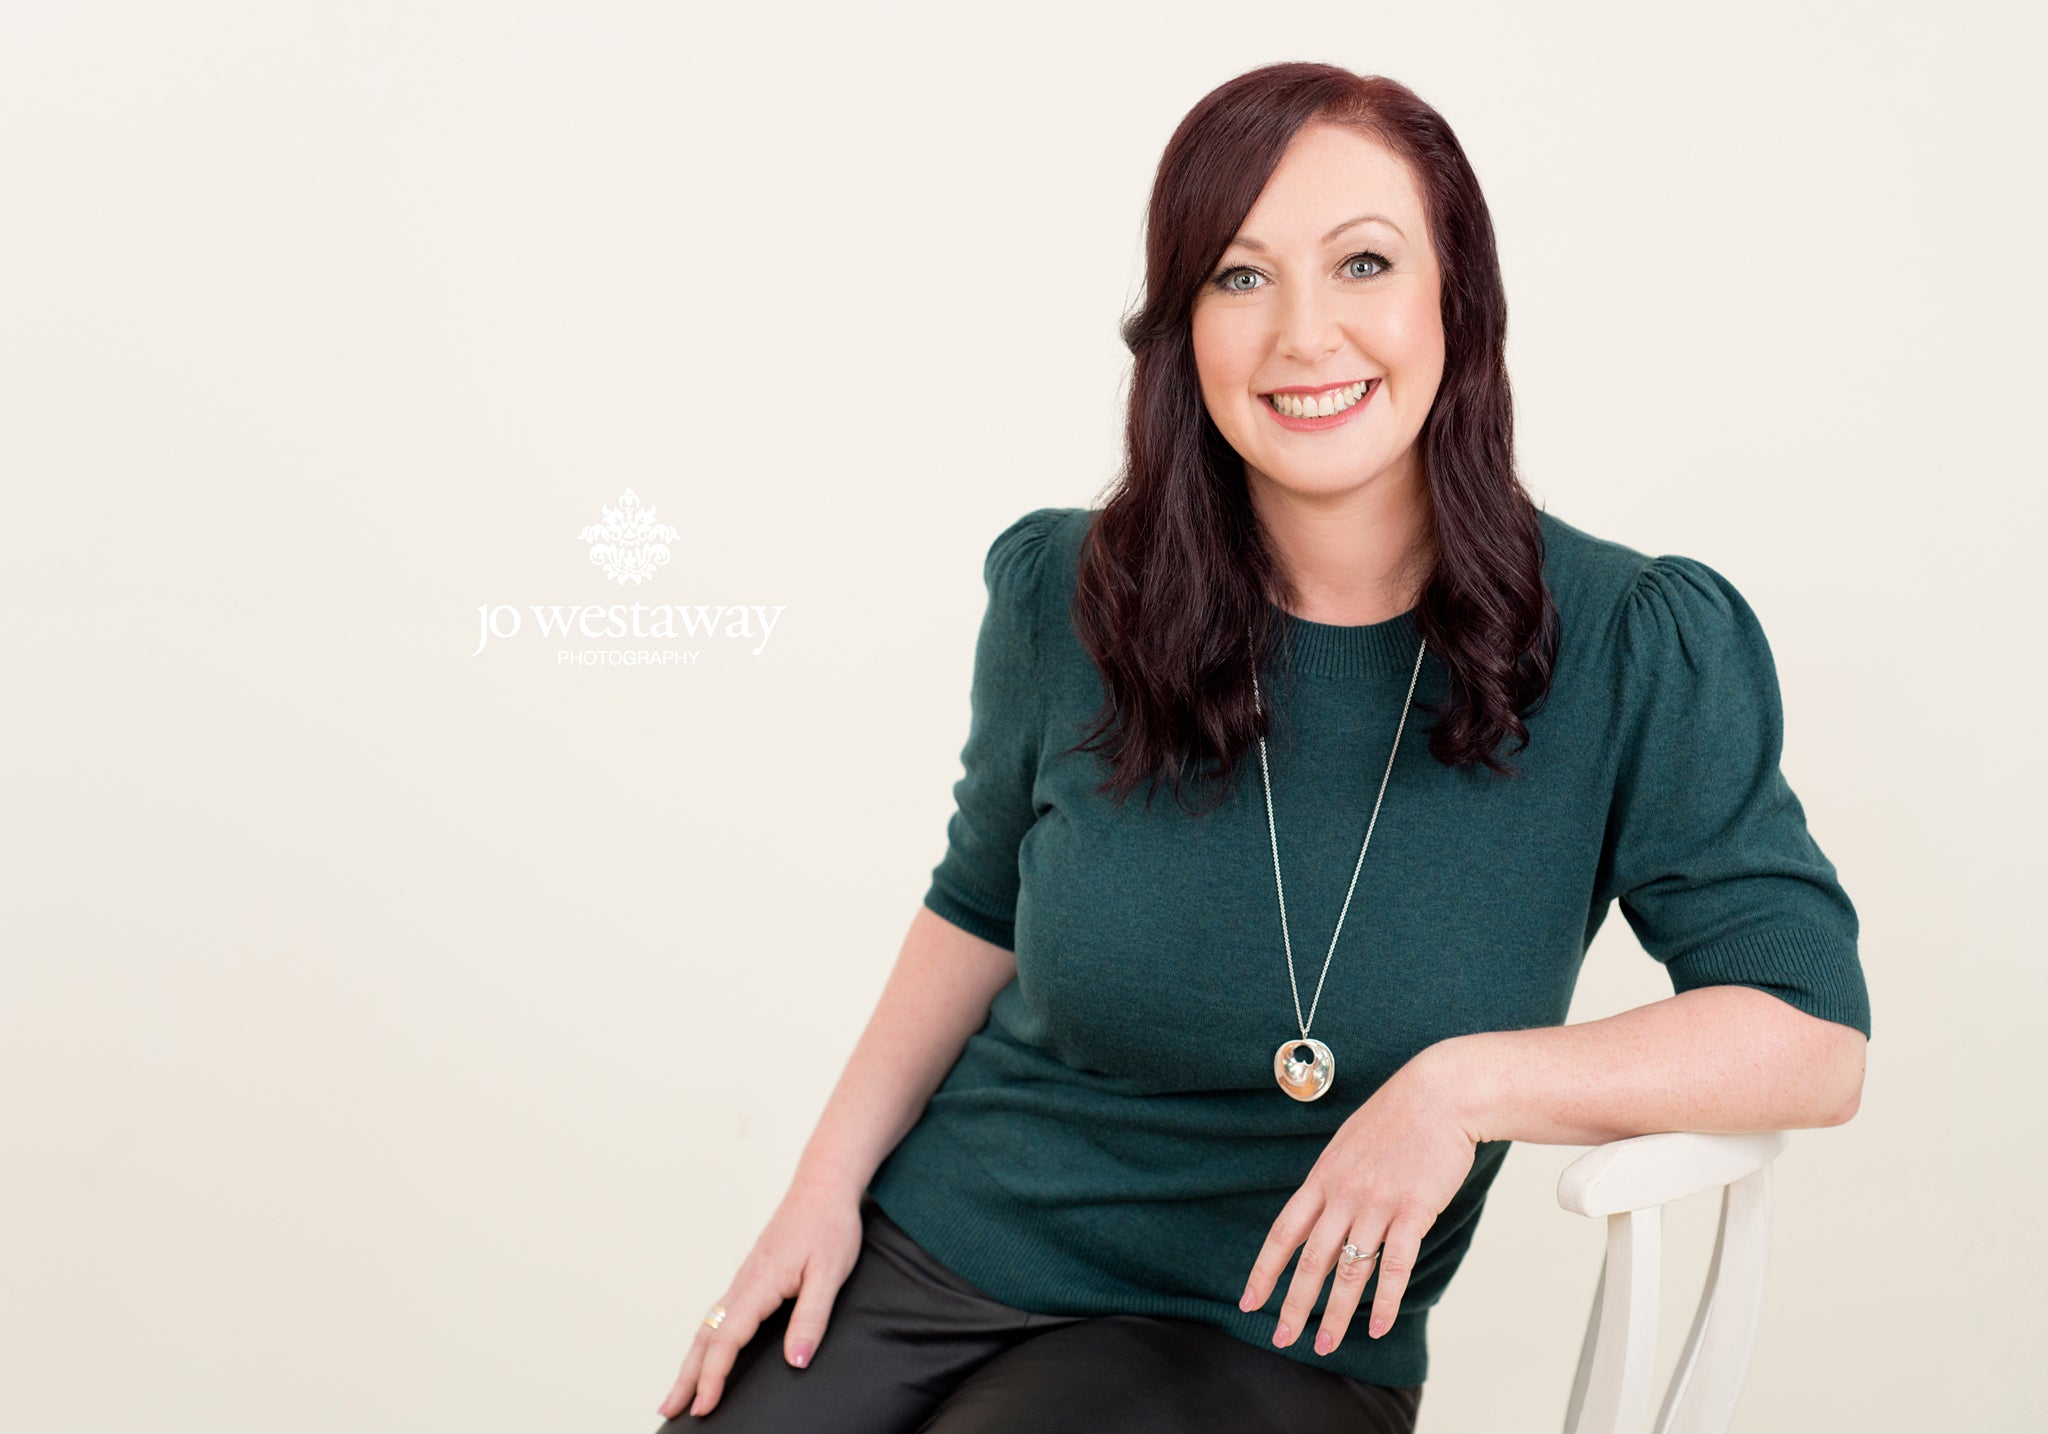 Personal branding and headshots by Jo Westaway Photography for business women